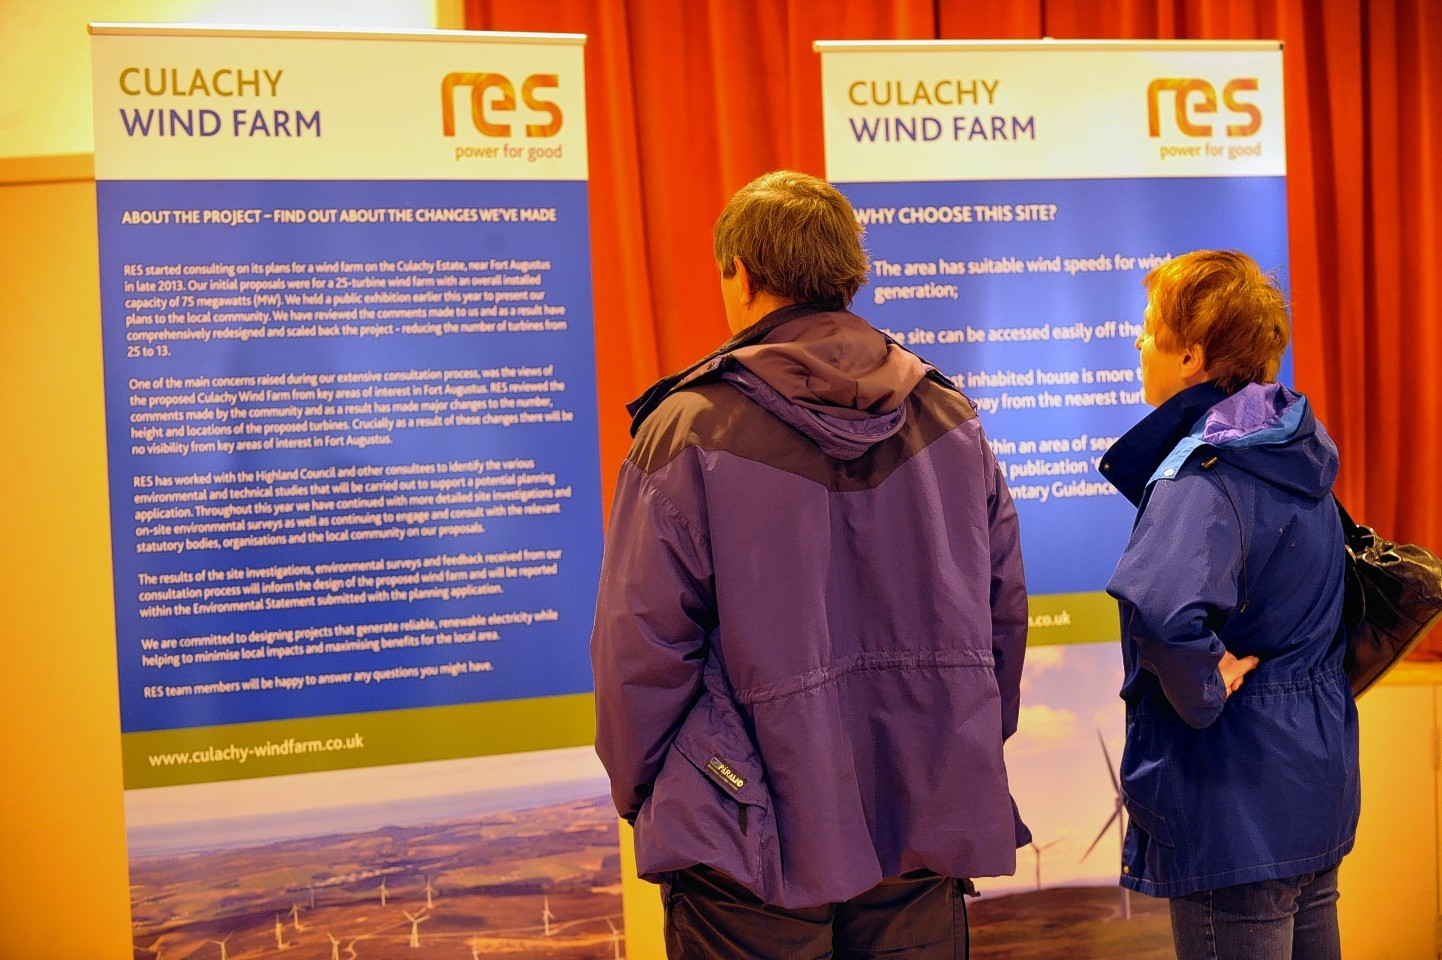 The Culachy windfarm exhibition